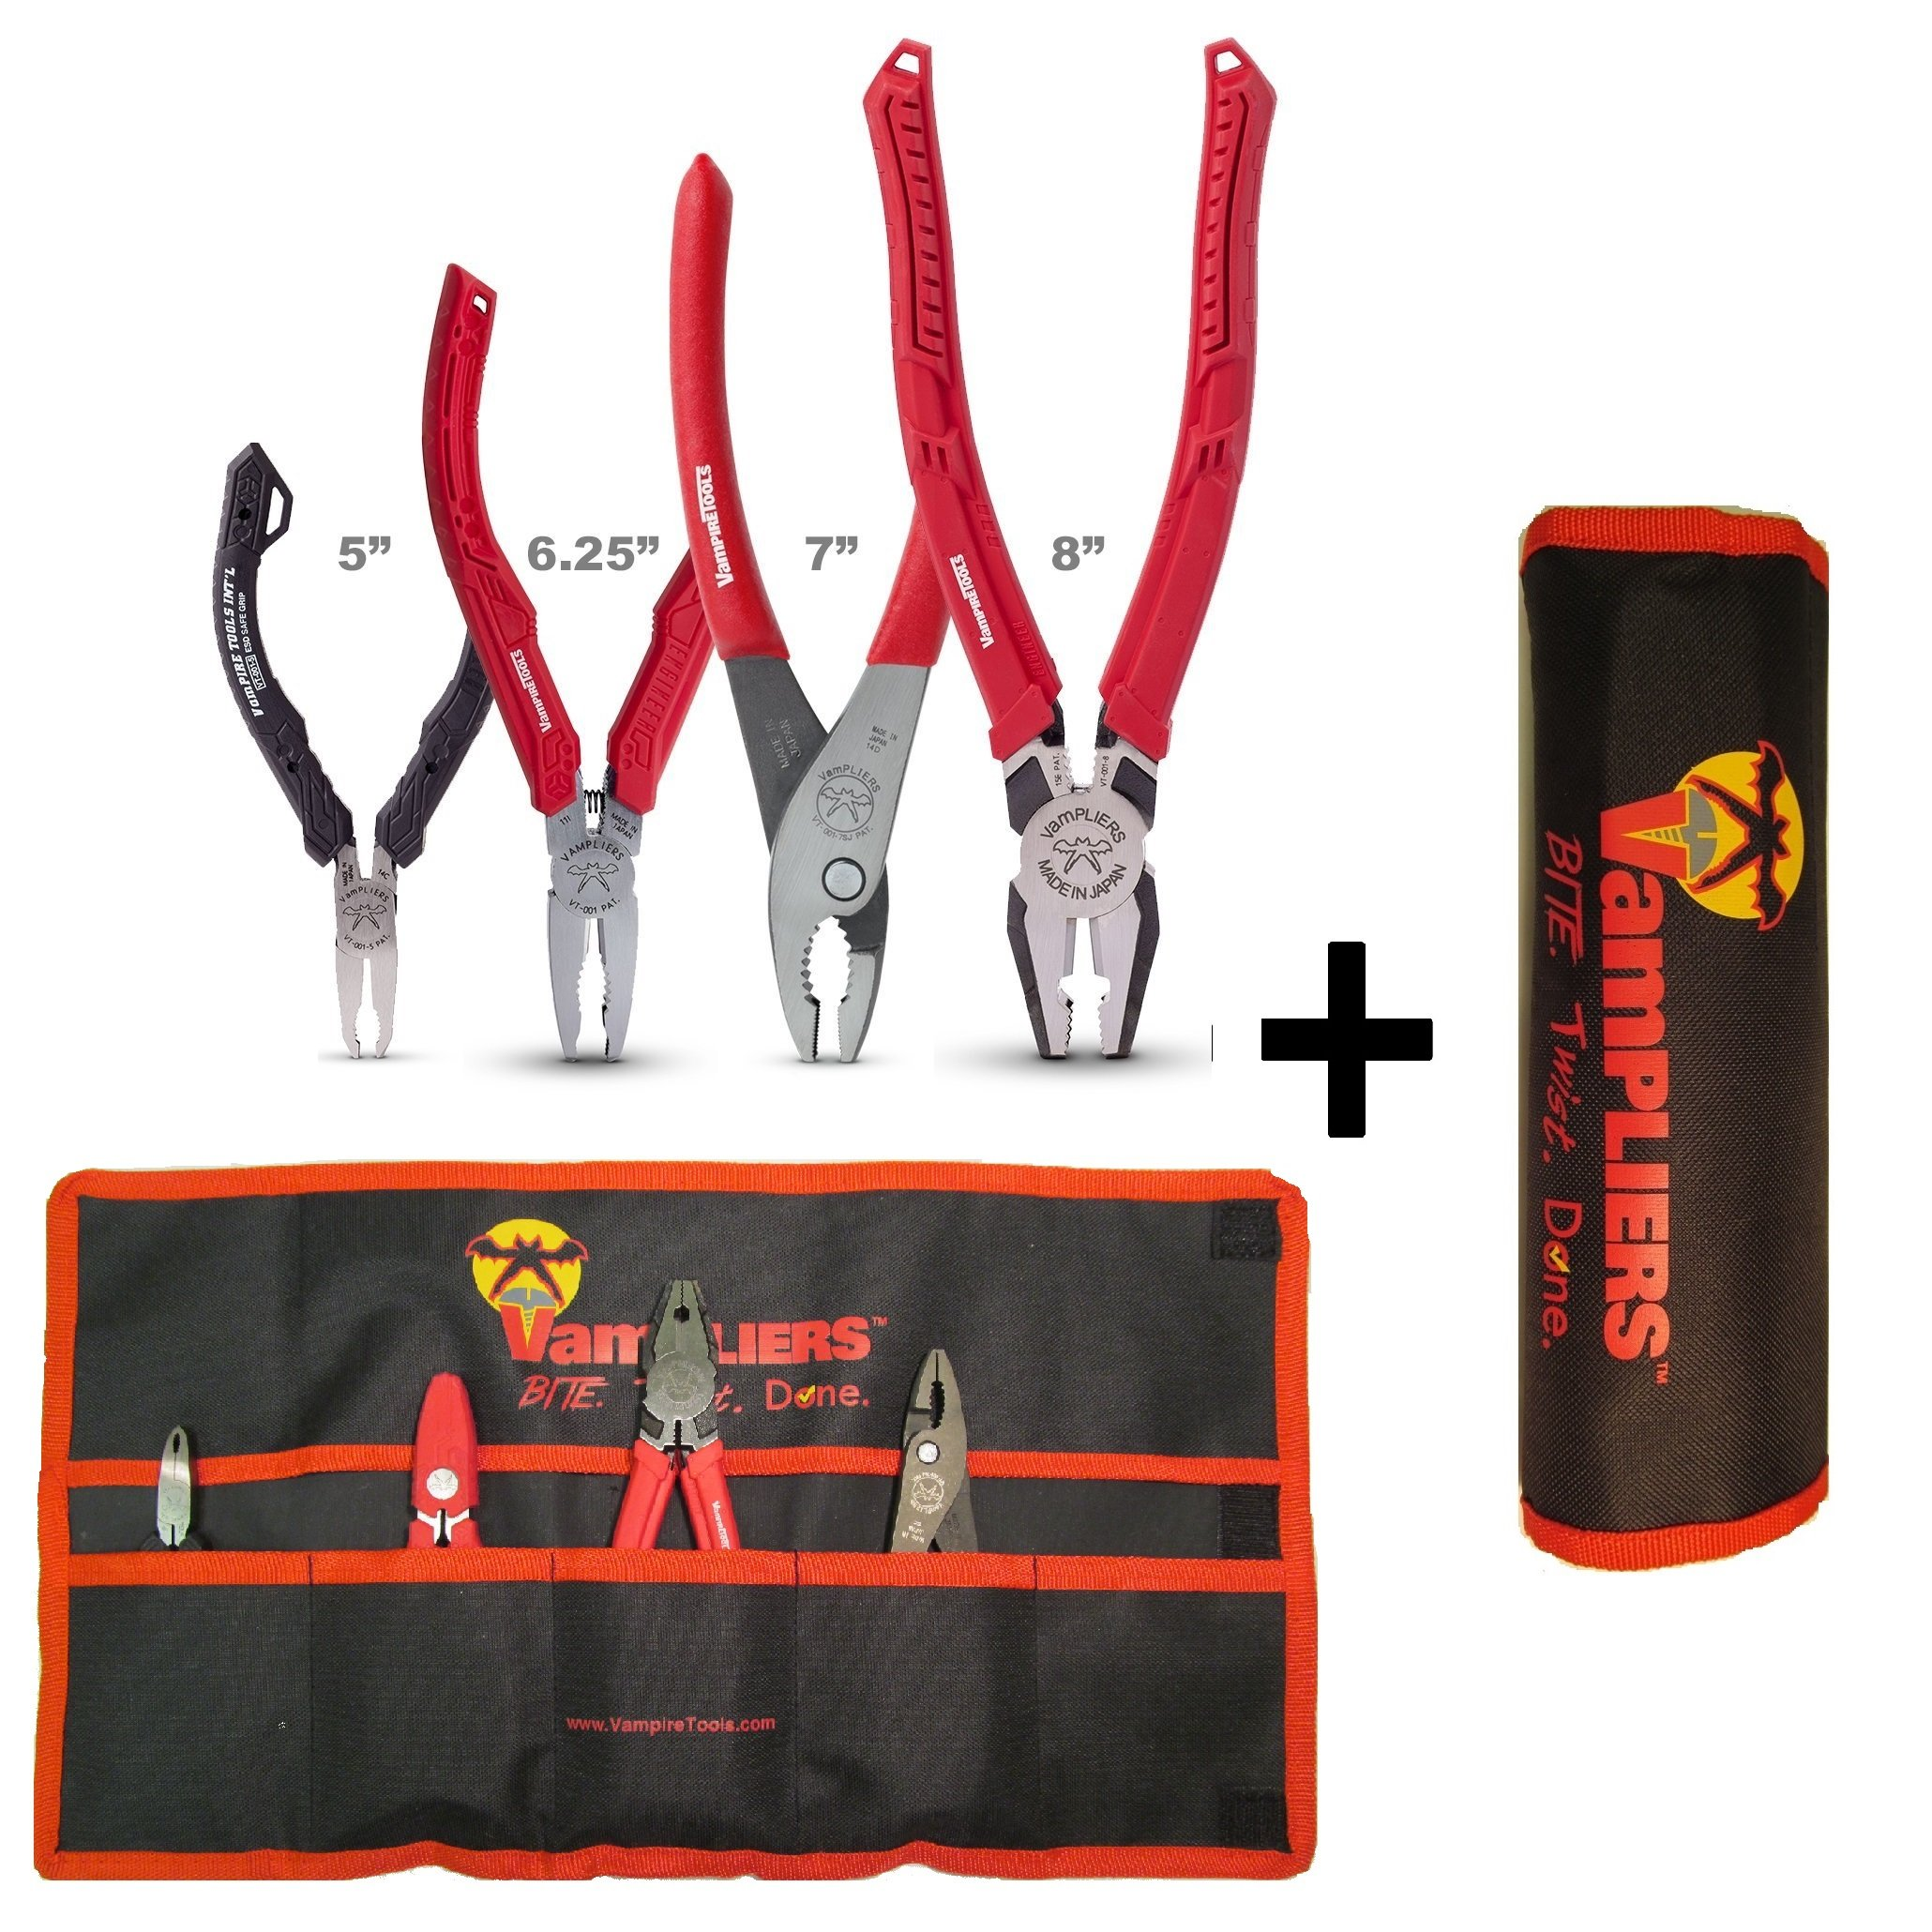 VAMPLIERS. Best Made Pliers! 4-PC Set S4AP Specialty Screw Extractions Pliers. Extract Stripped Stuck Security, Corroded or Rusted Screws/Nuts/Bolts With Tool Pouch by Vampire Professional Tools International